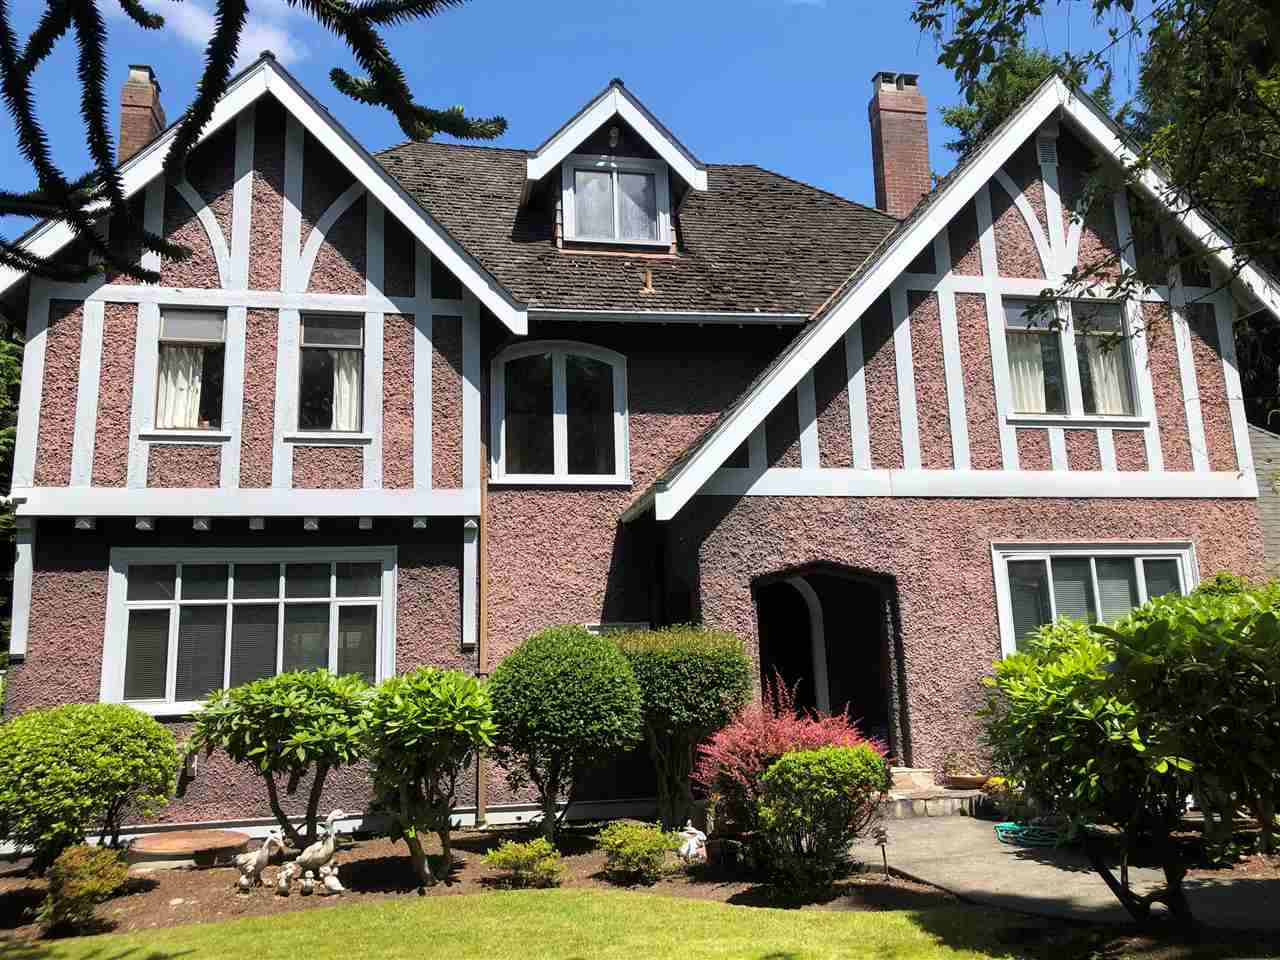 1663 AVONDALE AVENUE - Shaughnessy House/Single Family for sale, 4 Bedrooms (R2472751)